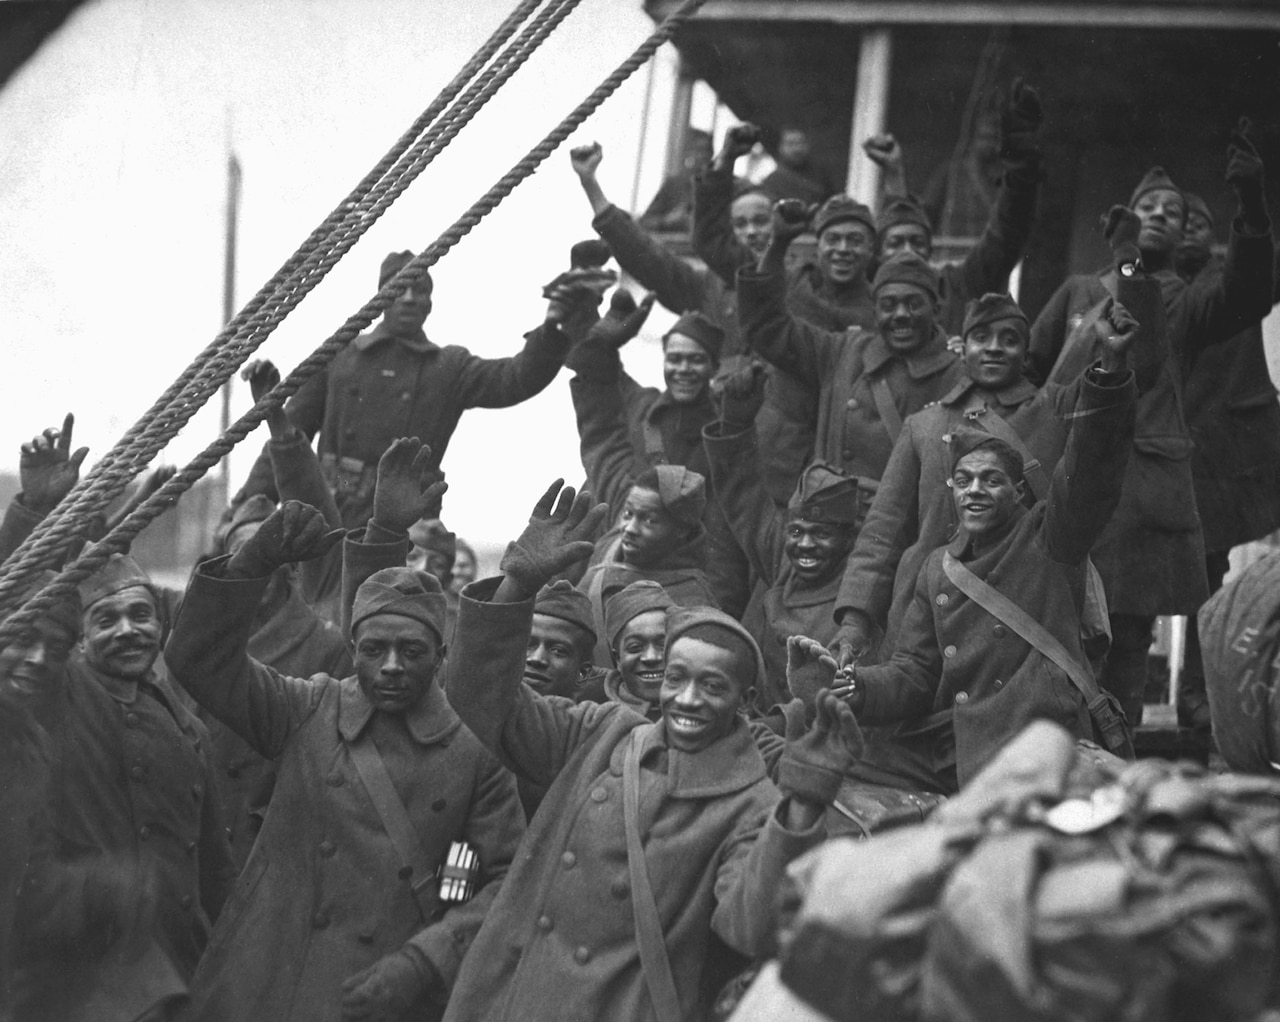 a group of African American men just returning from world war one